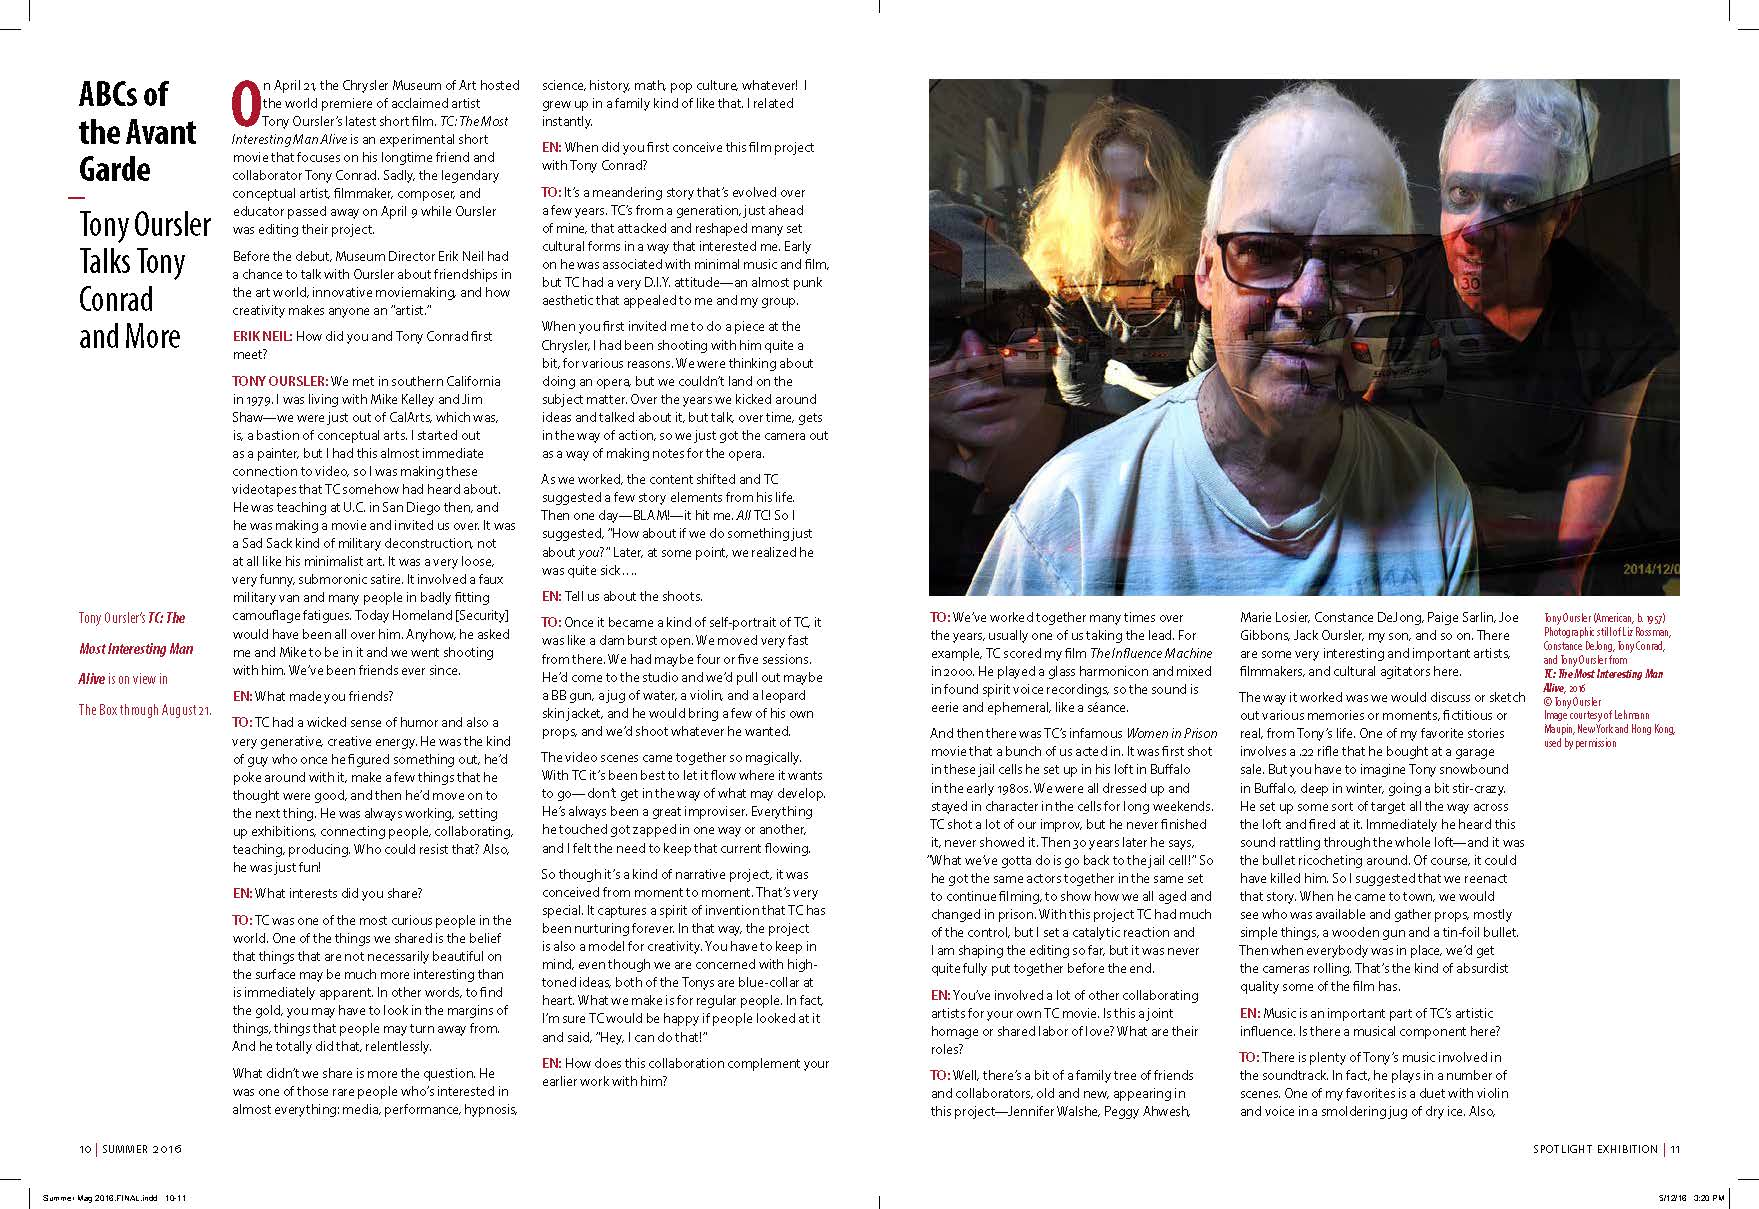 Chrysler Mag Summer - Tony Oursler Q&A_Page_1.jpg